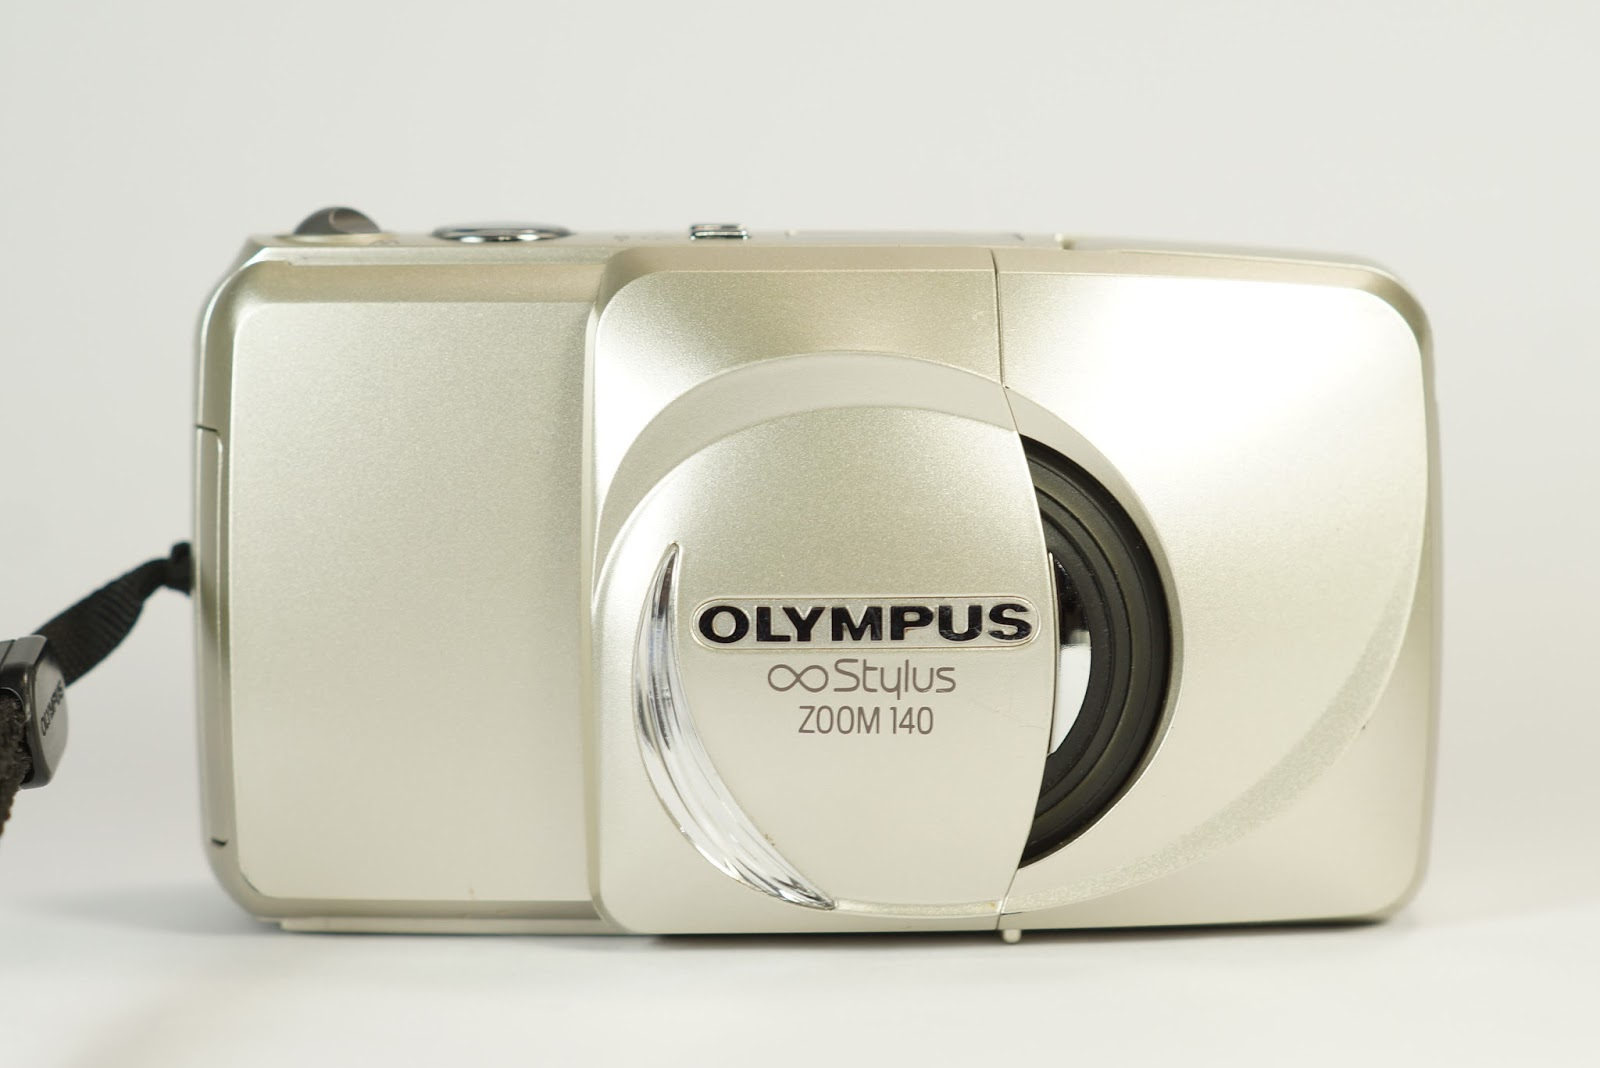 Olympus Infinity Stylus Zoom 140 All Weather Film Camera